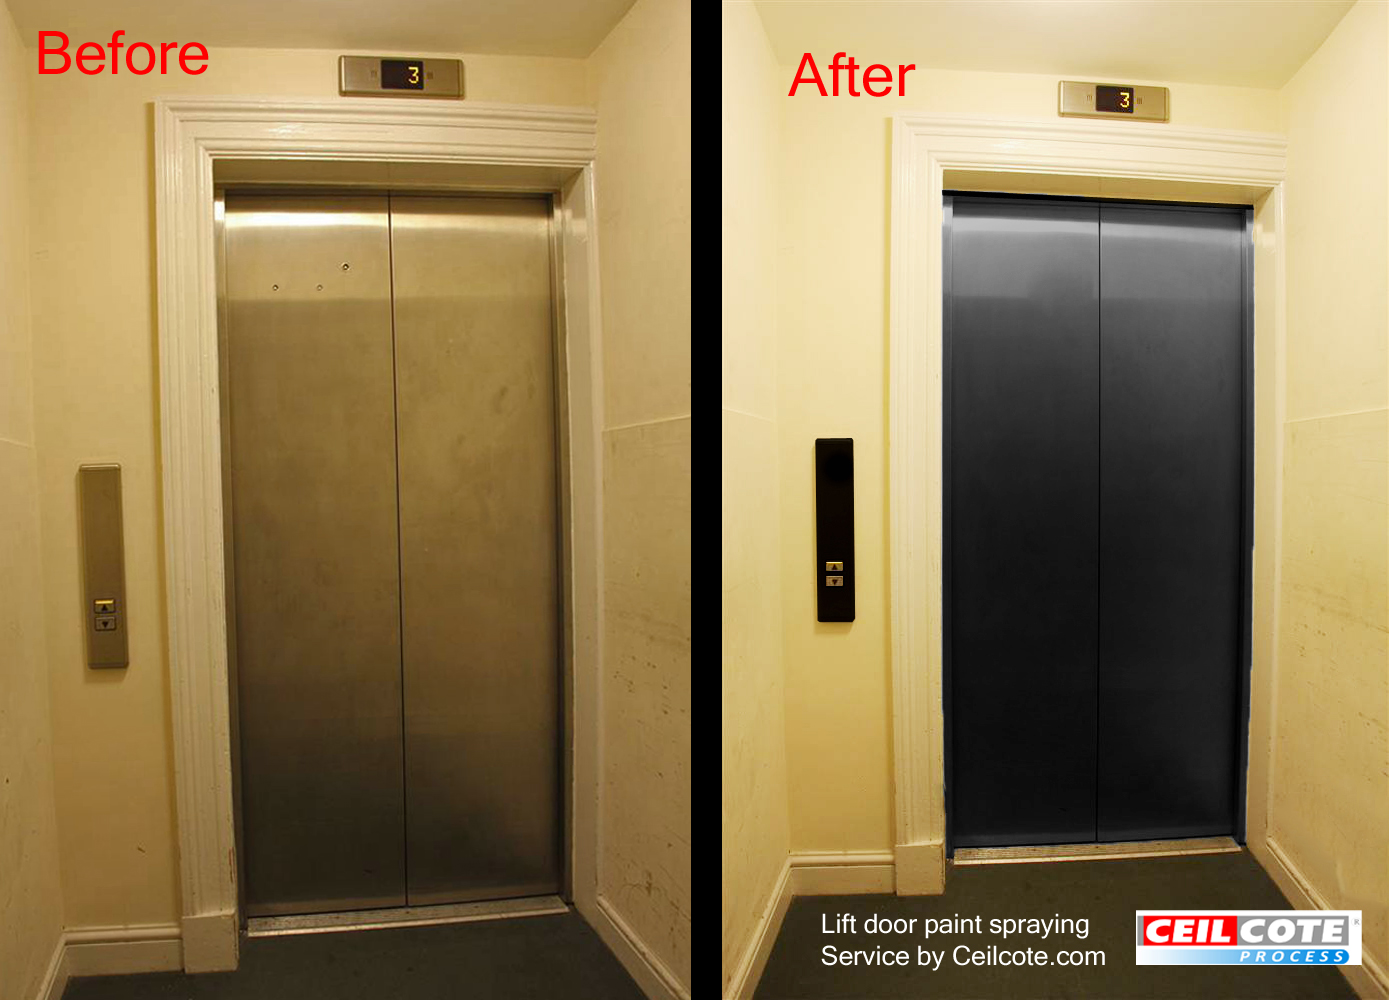 Air Door Lifts : Spray painting lift door by ceilcote